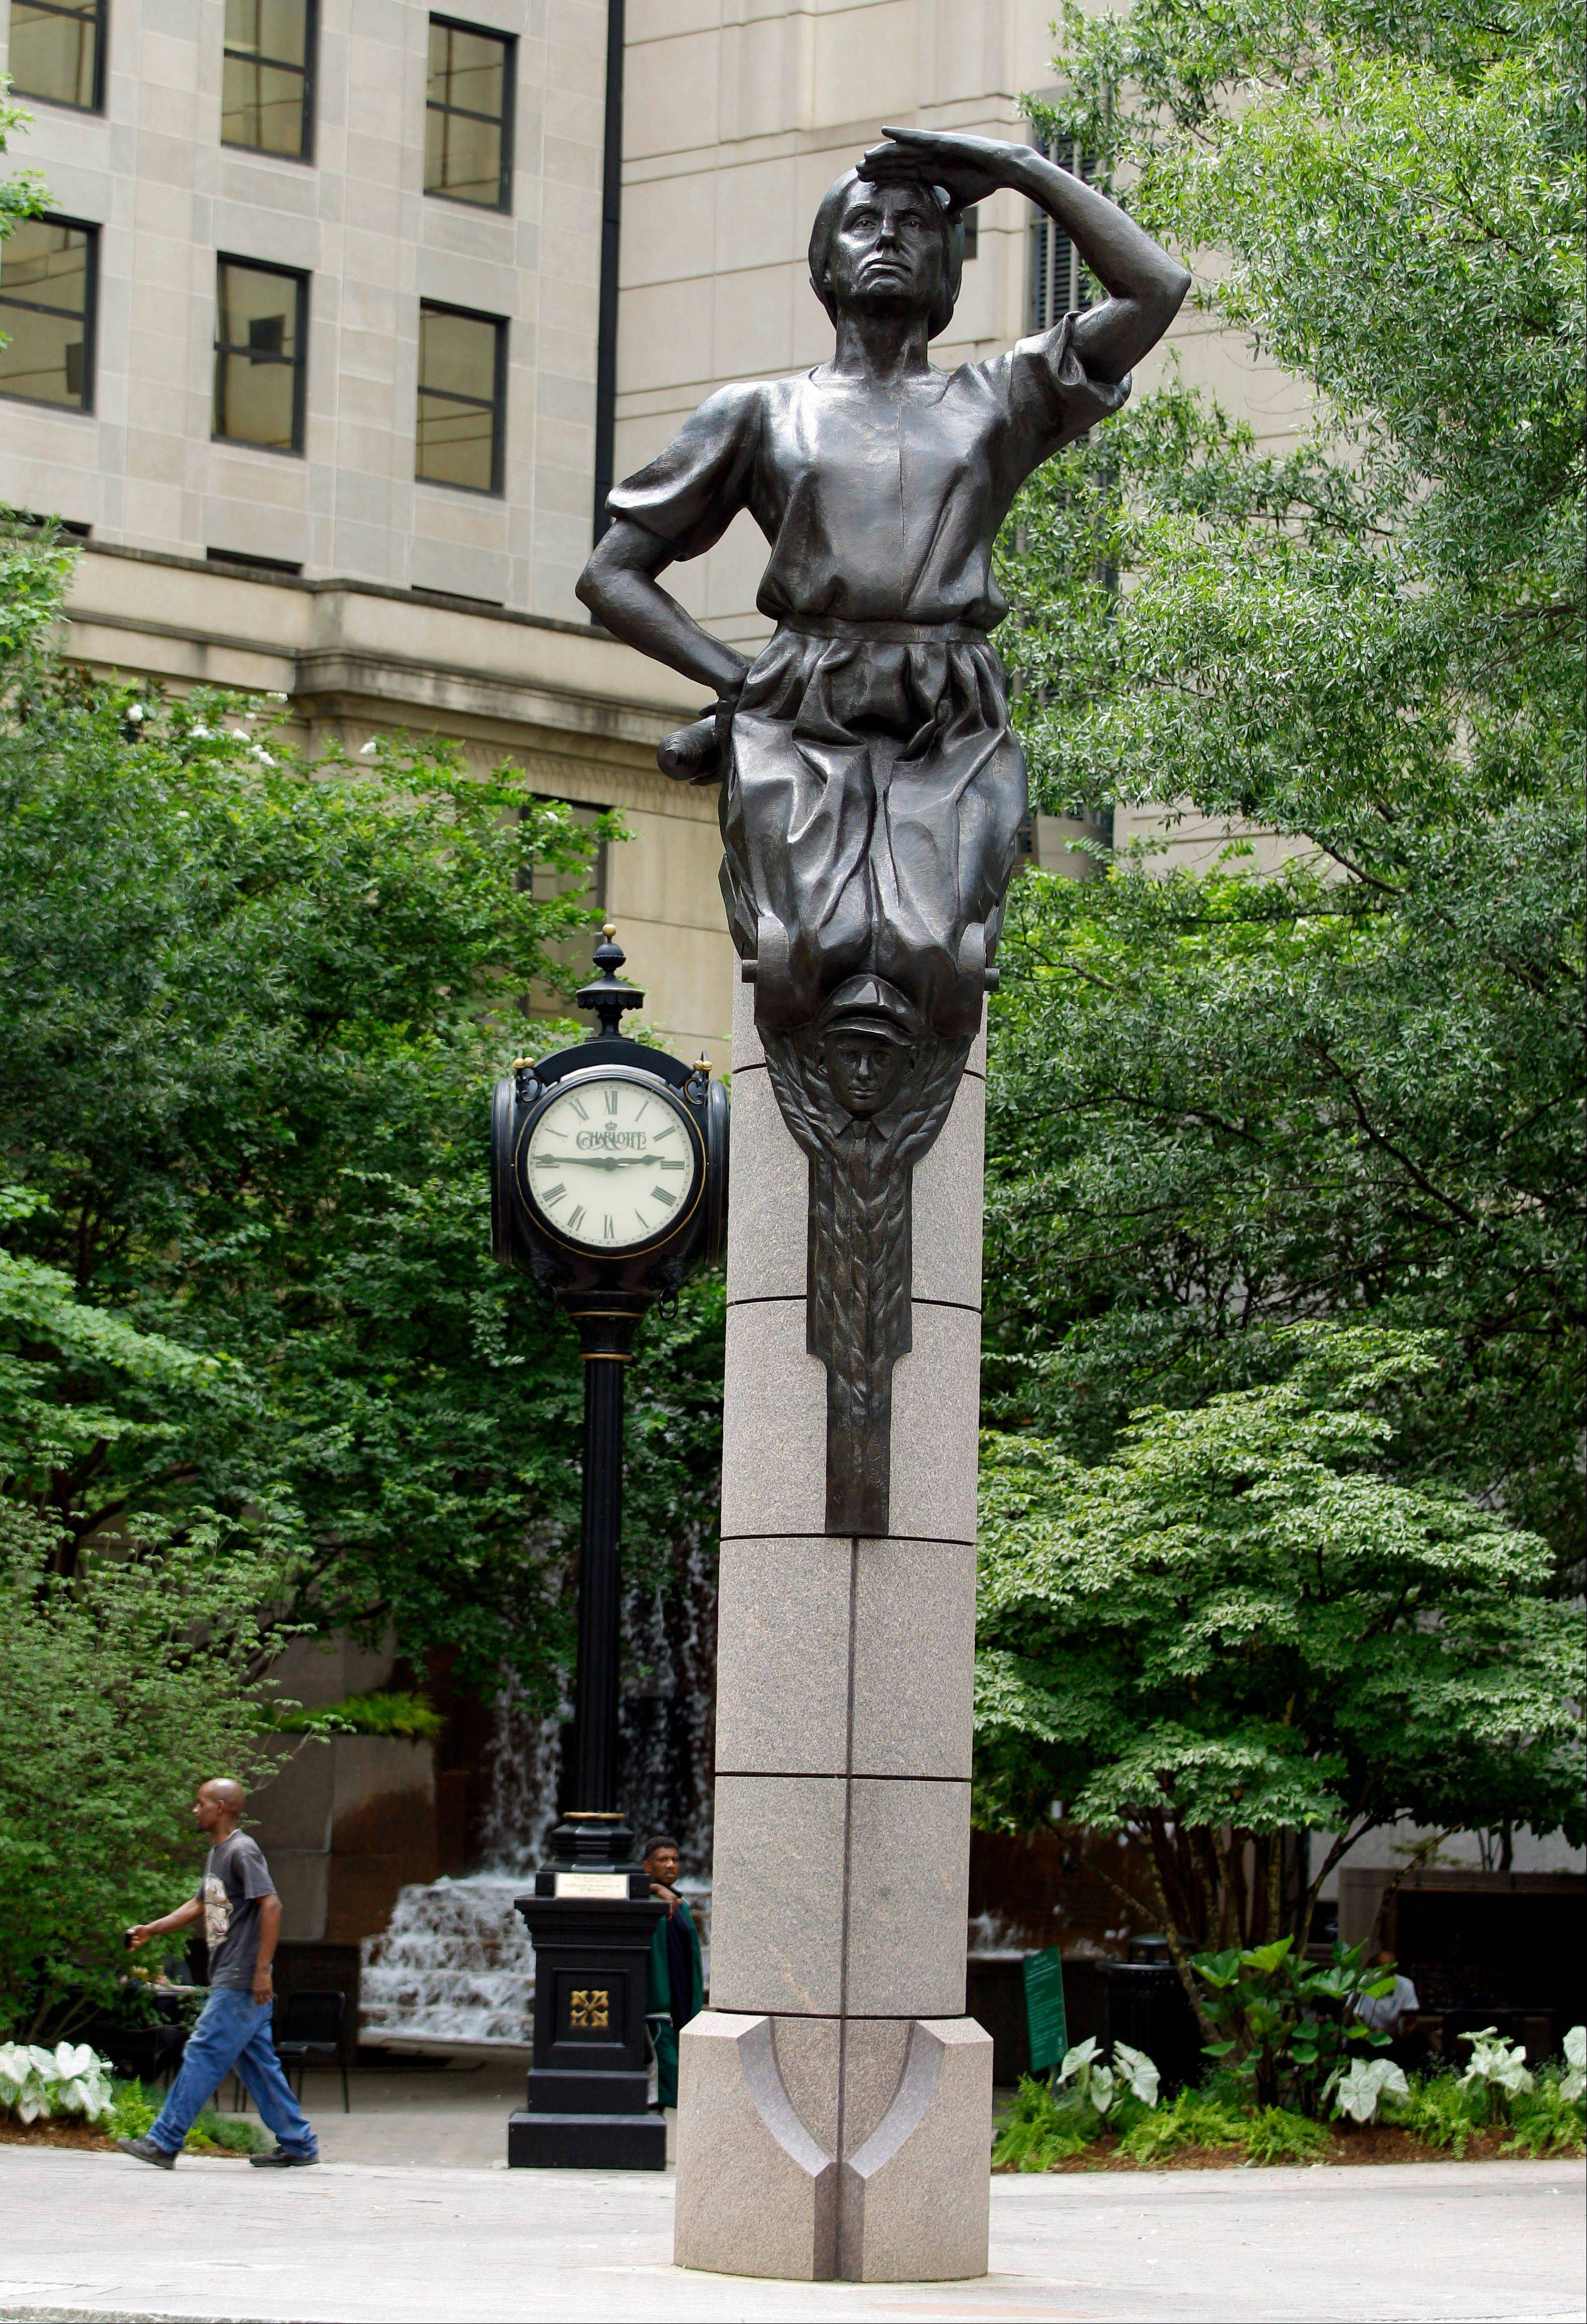 A statue at Independence Square in downtown Charlotte, N.C., is one of four bronze statues at the intersection representing commerce, transportation, energy and the future.